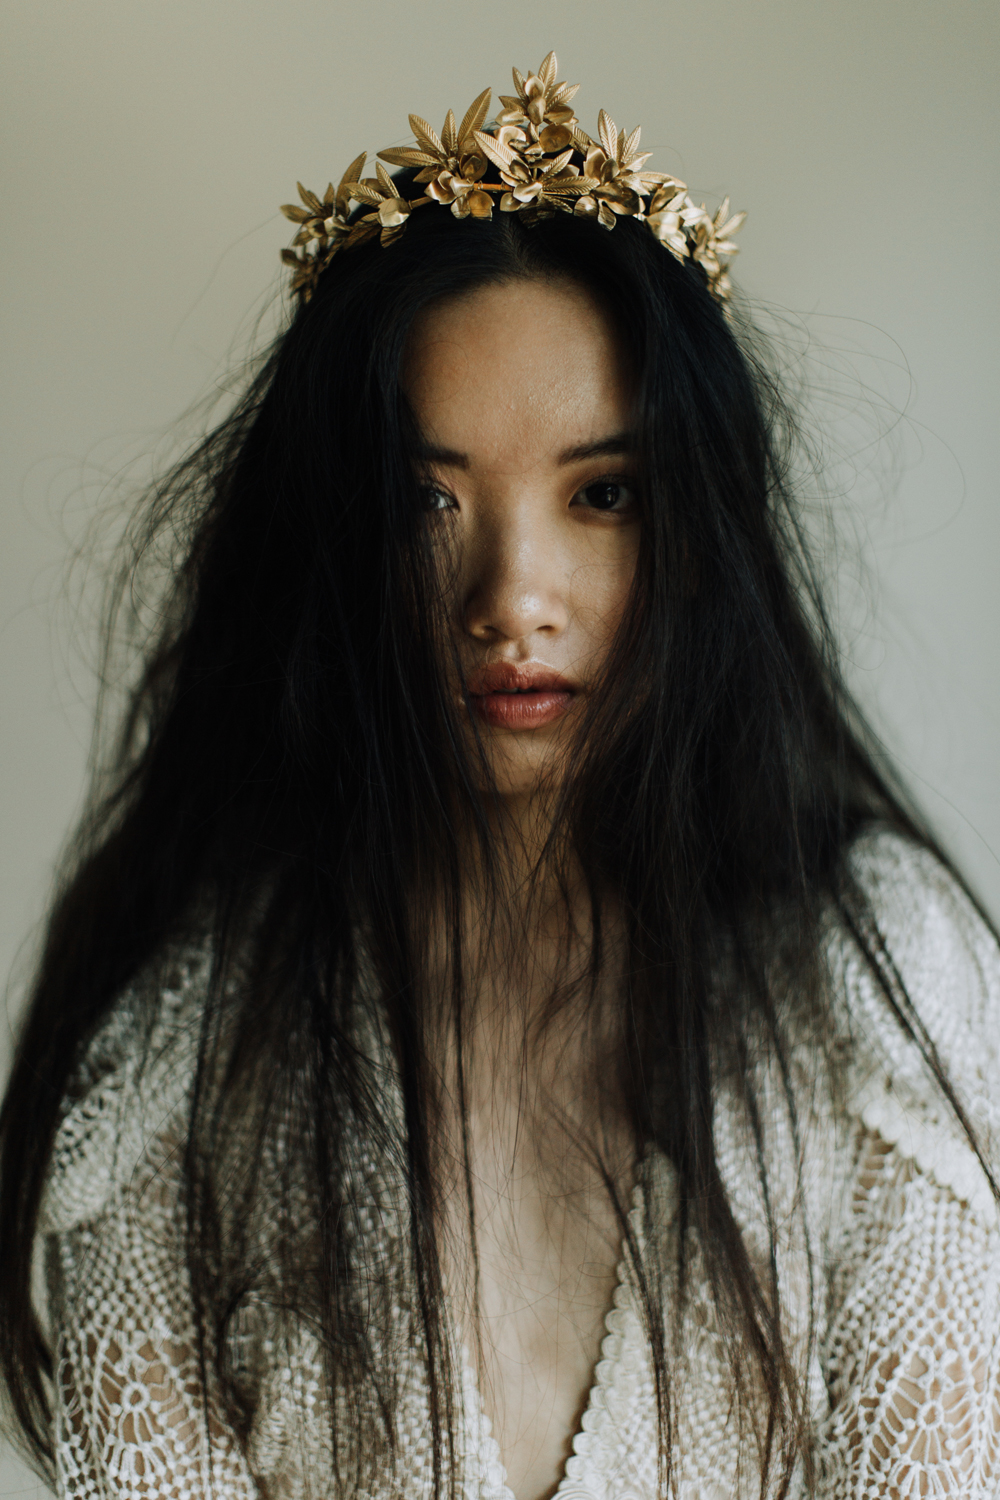 Ivy Crown by A.B. Ellie availble from Archive 12